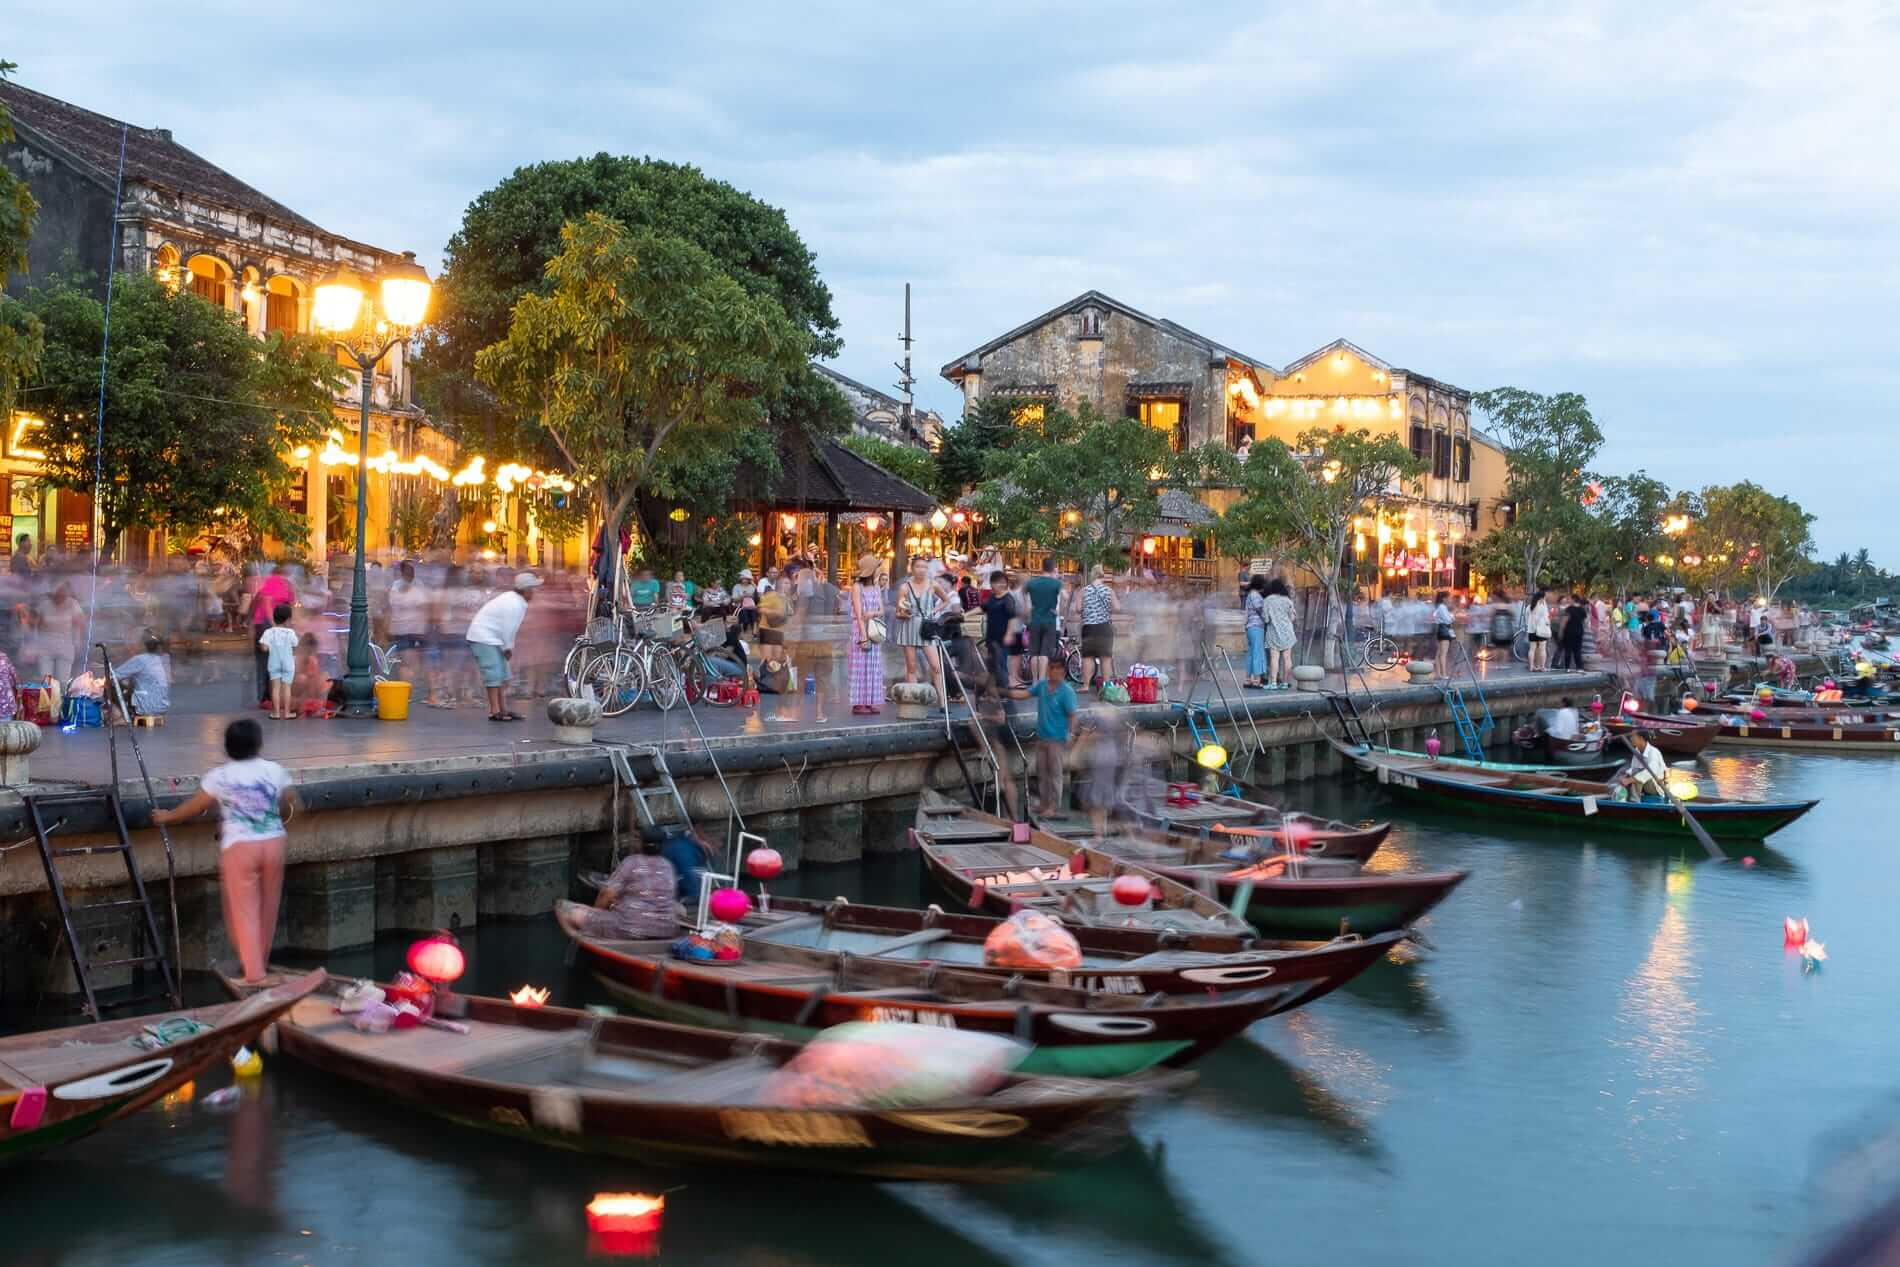 Best time to visit Hoi An during the Full Moon Festival